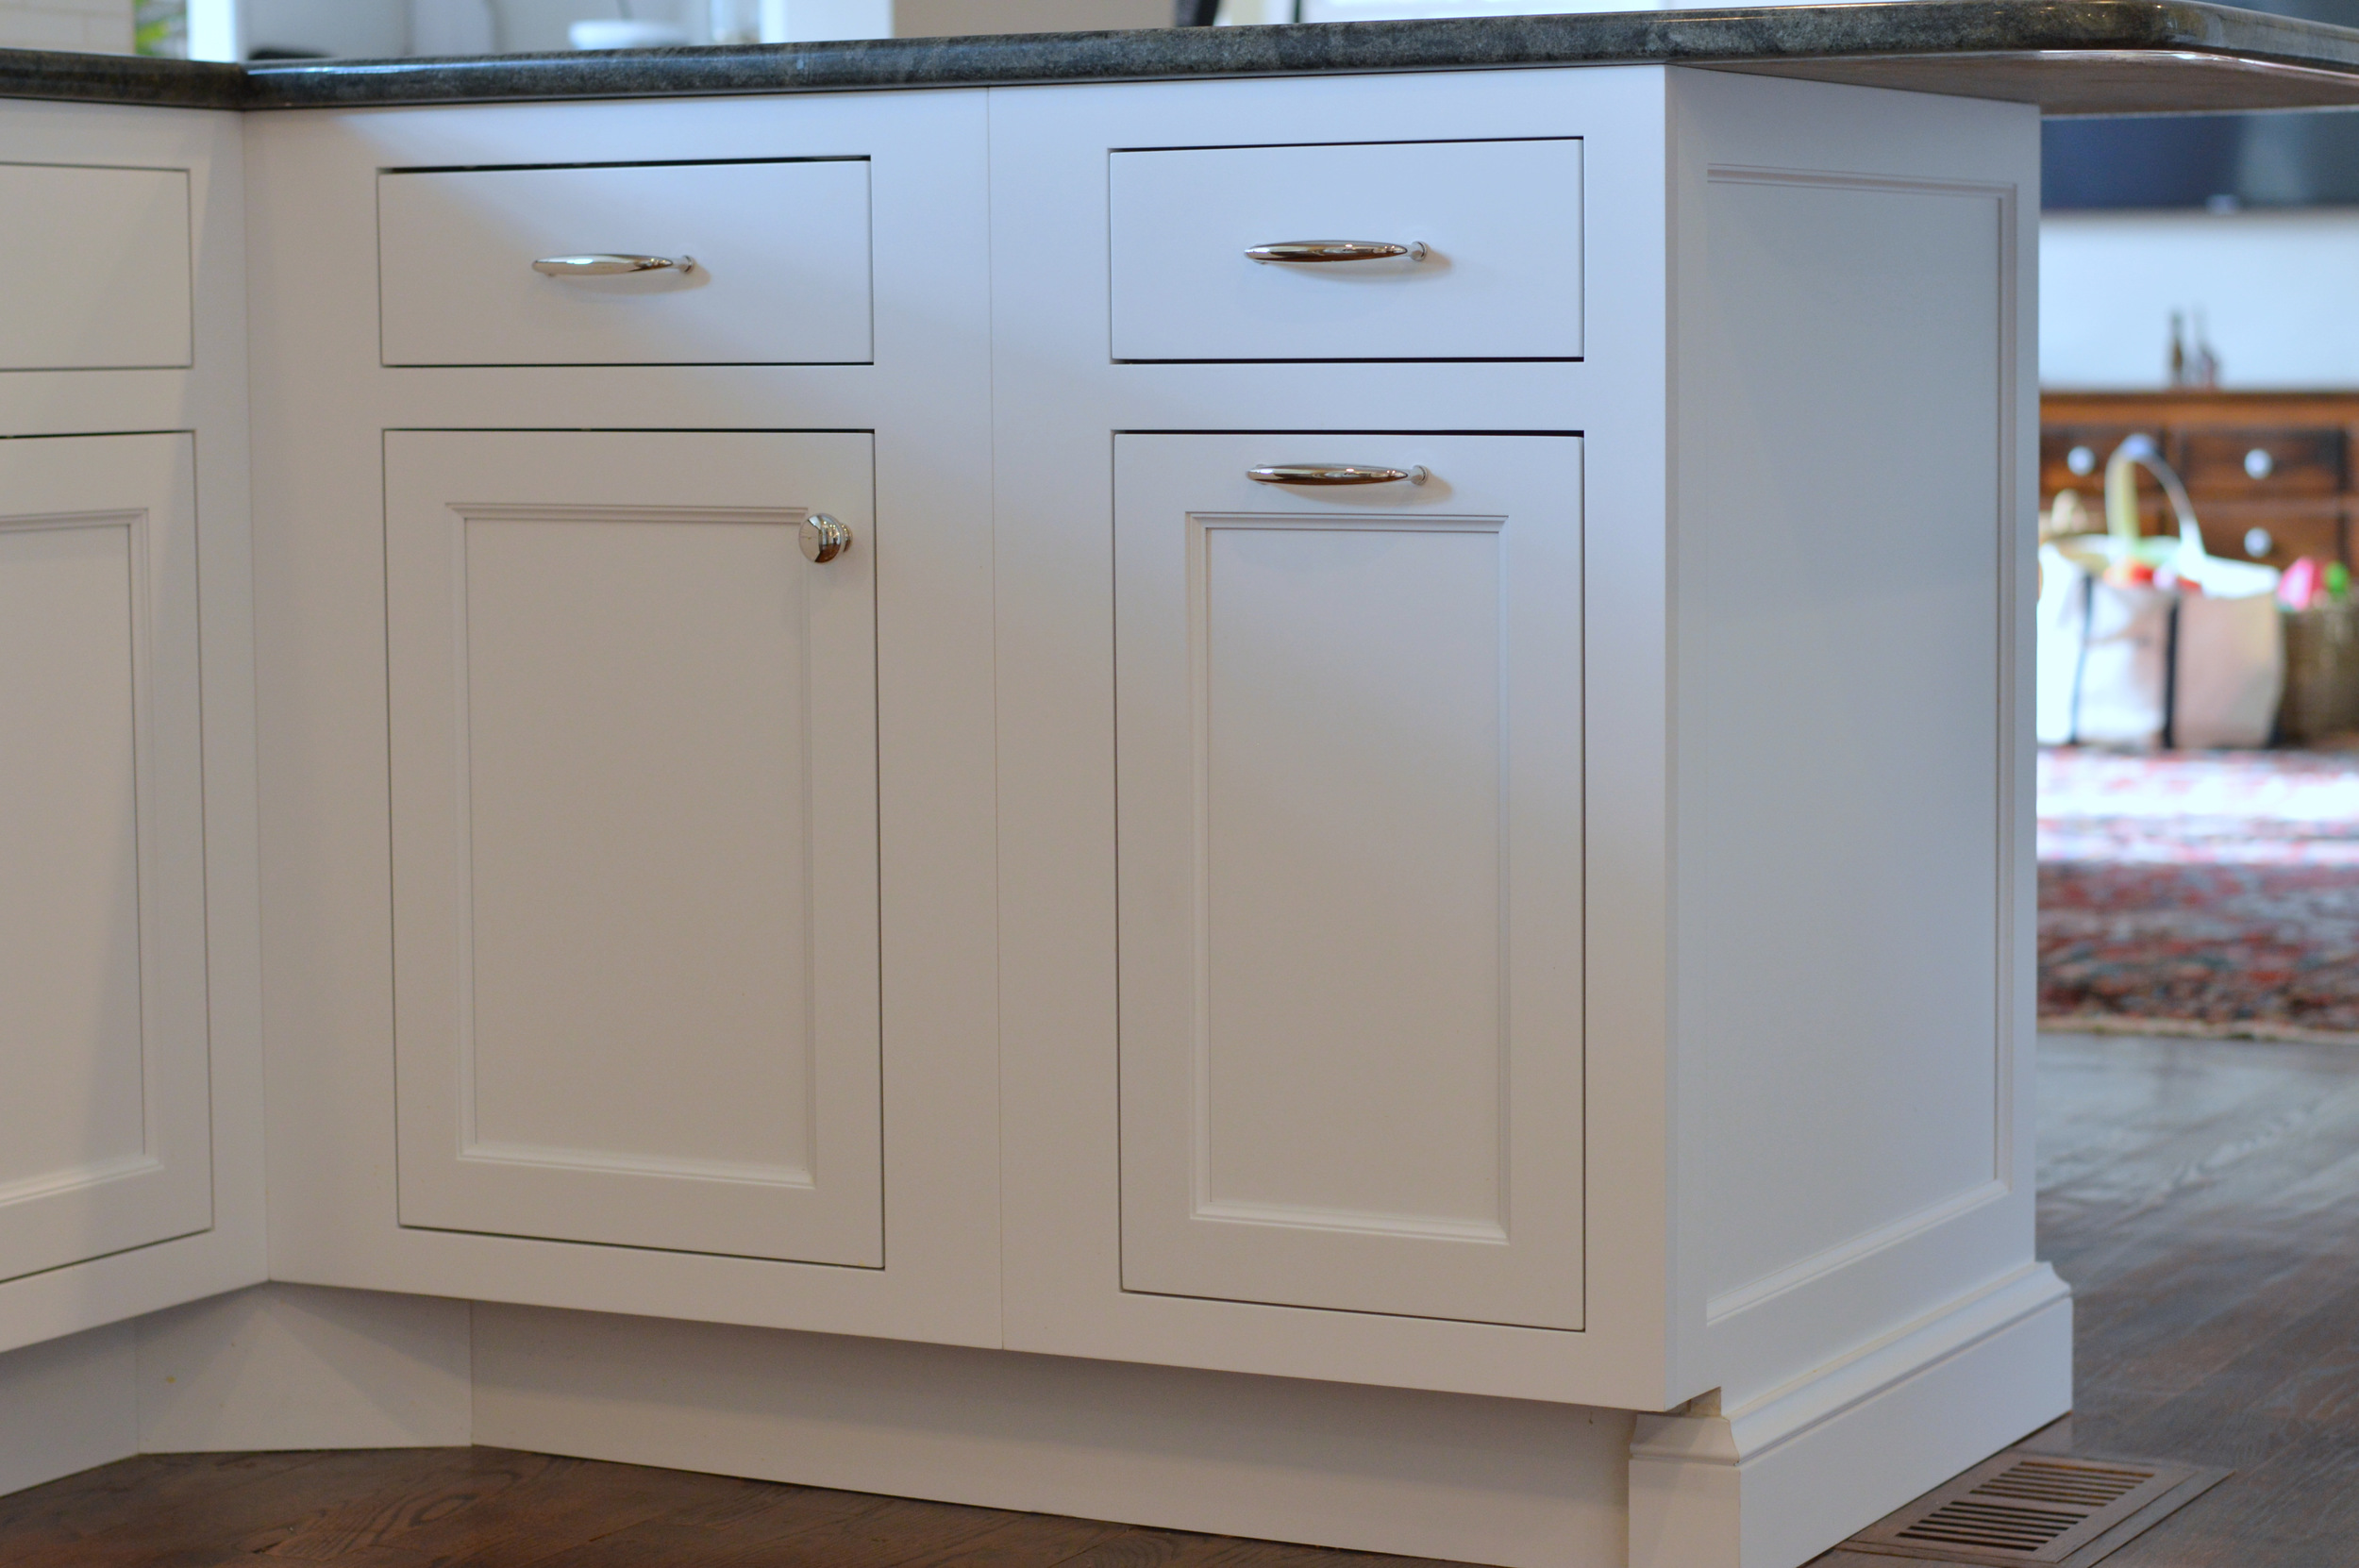 White Kitchen Cabinet End Panel and Baseboard